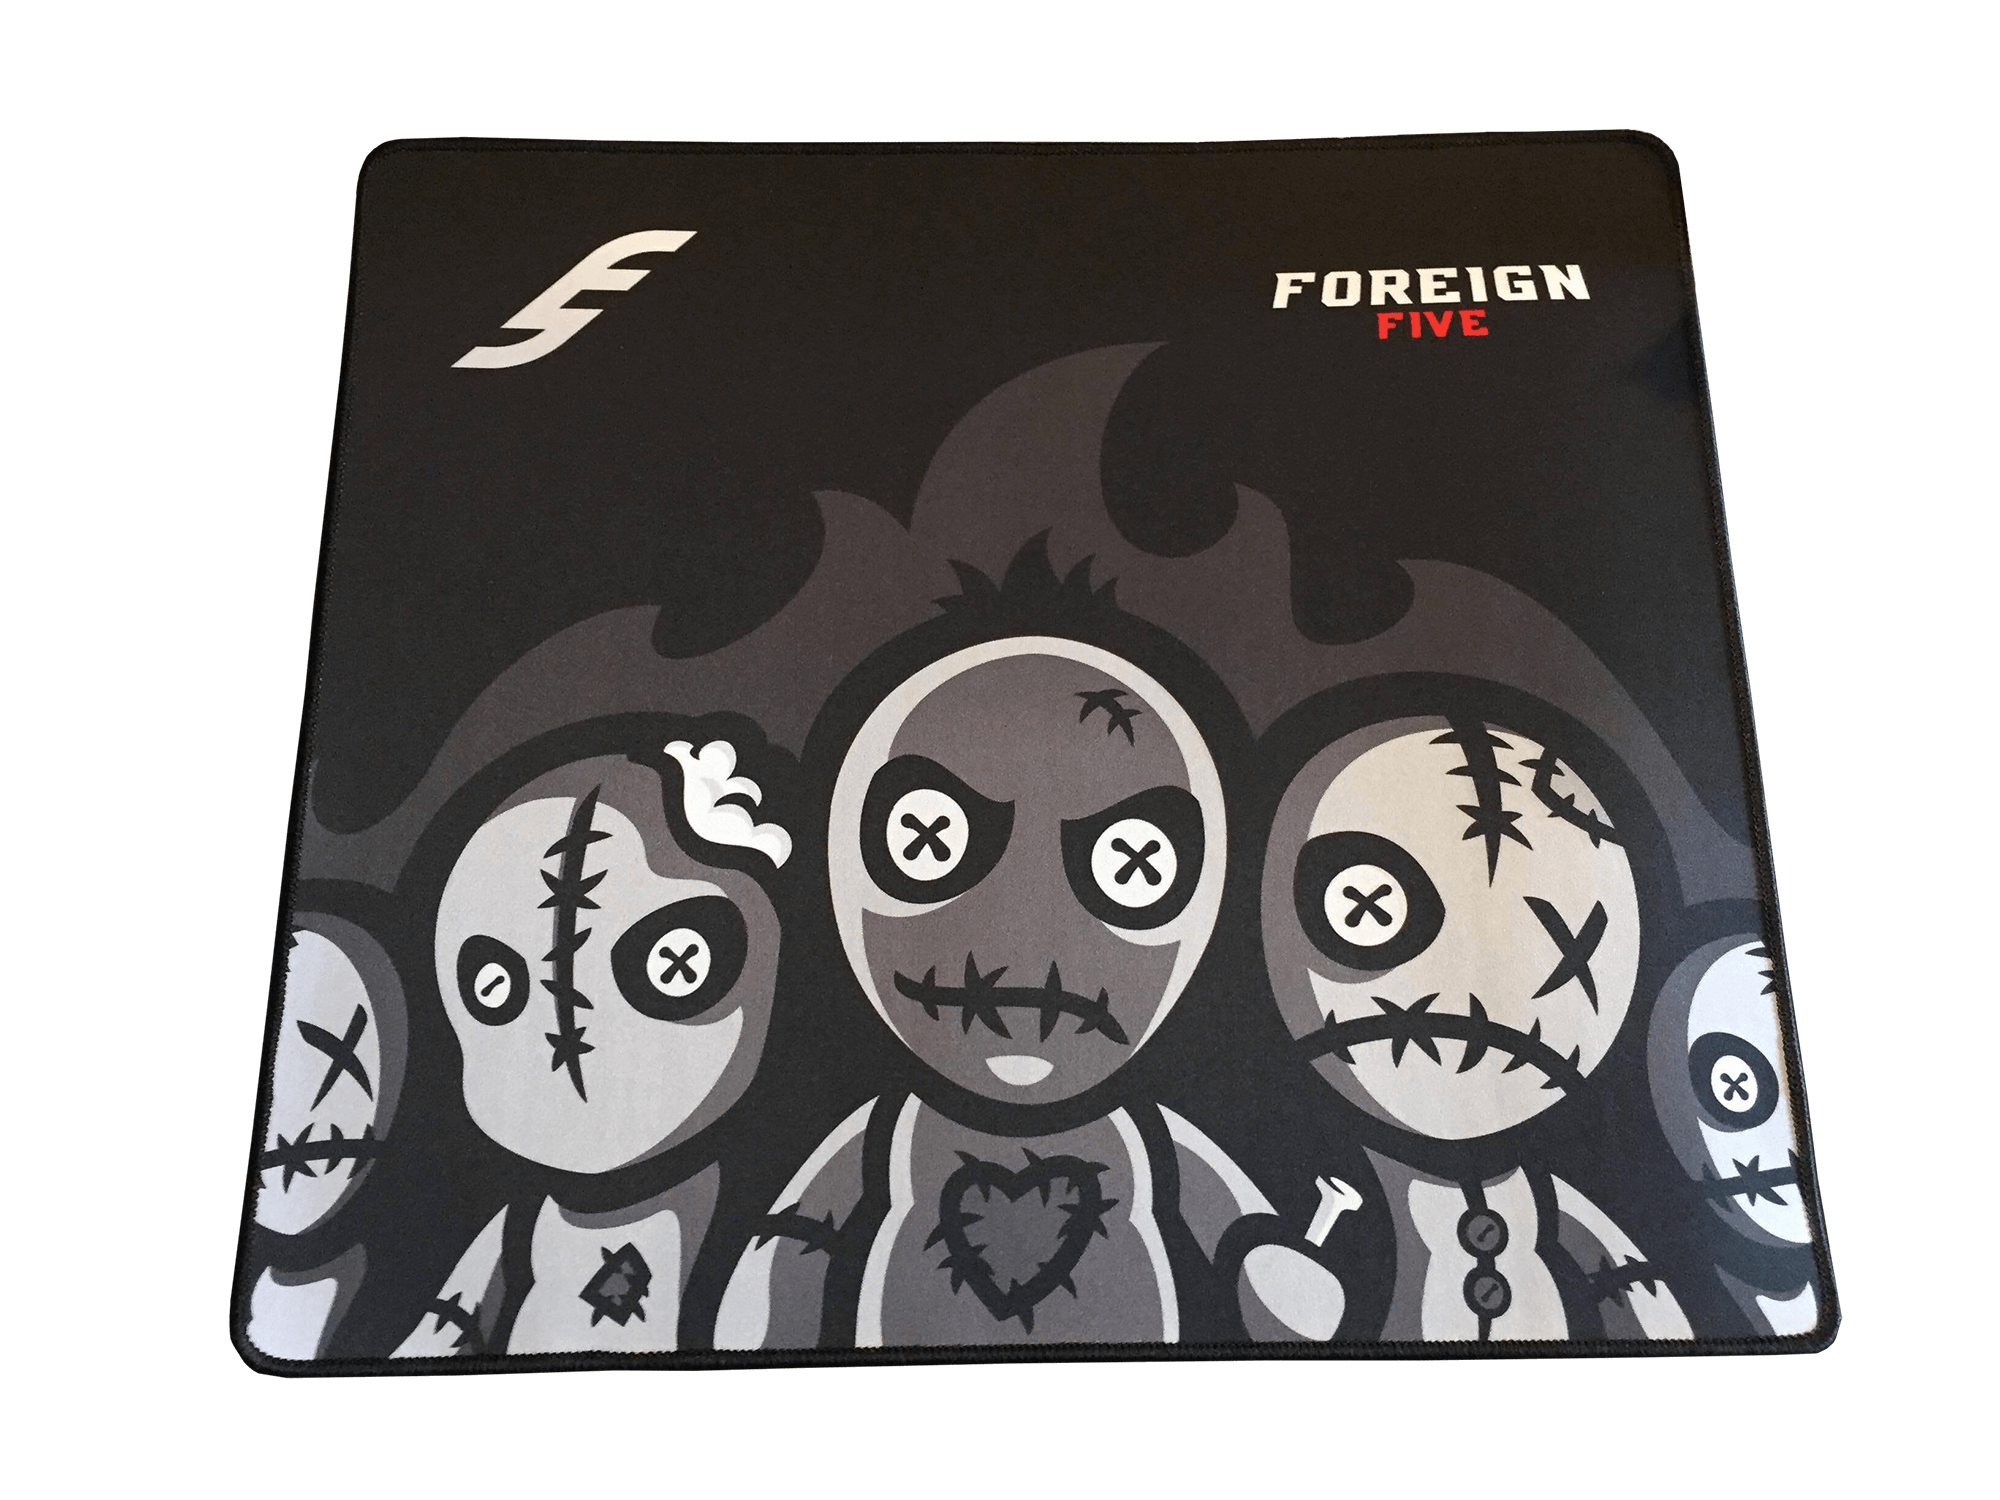 ForeignFive mousepad